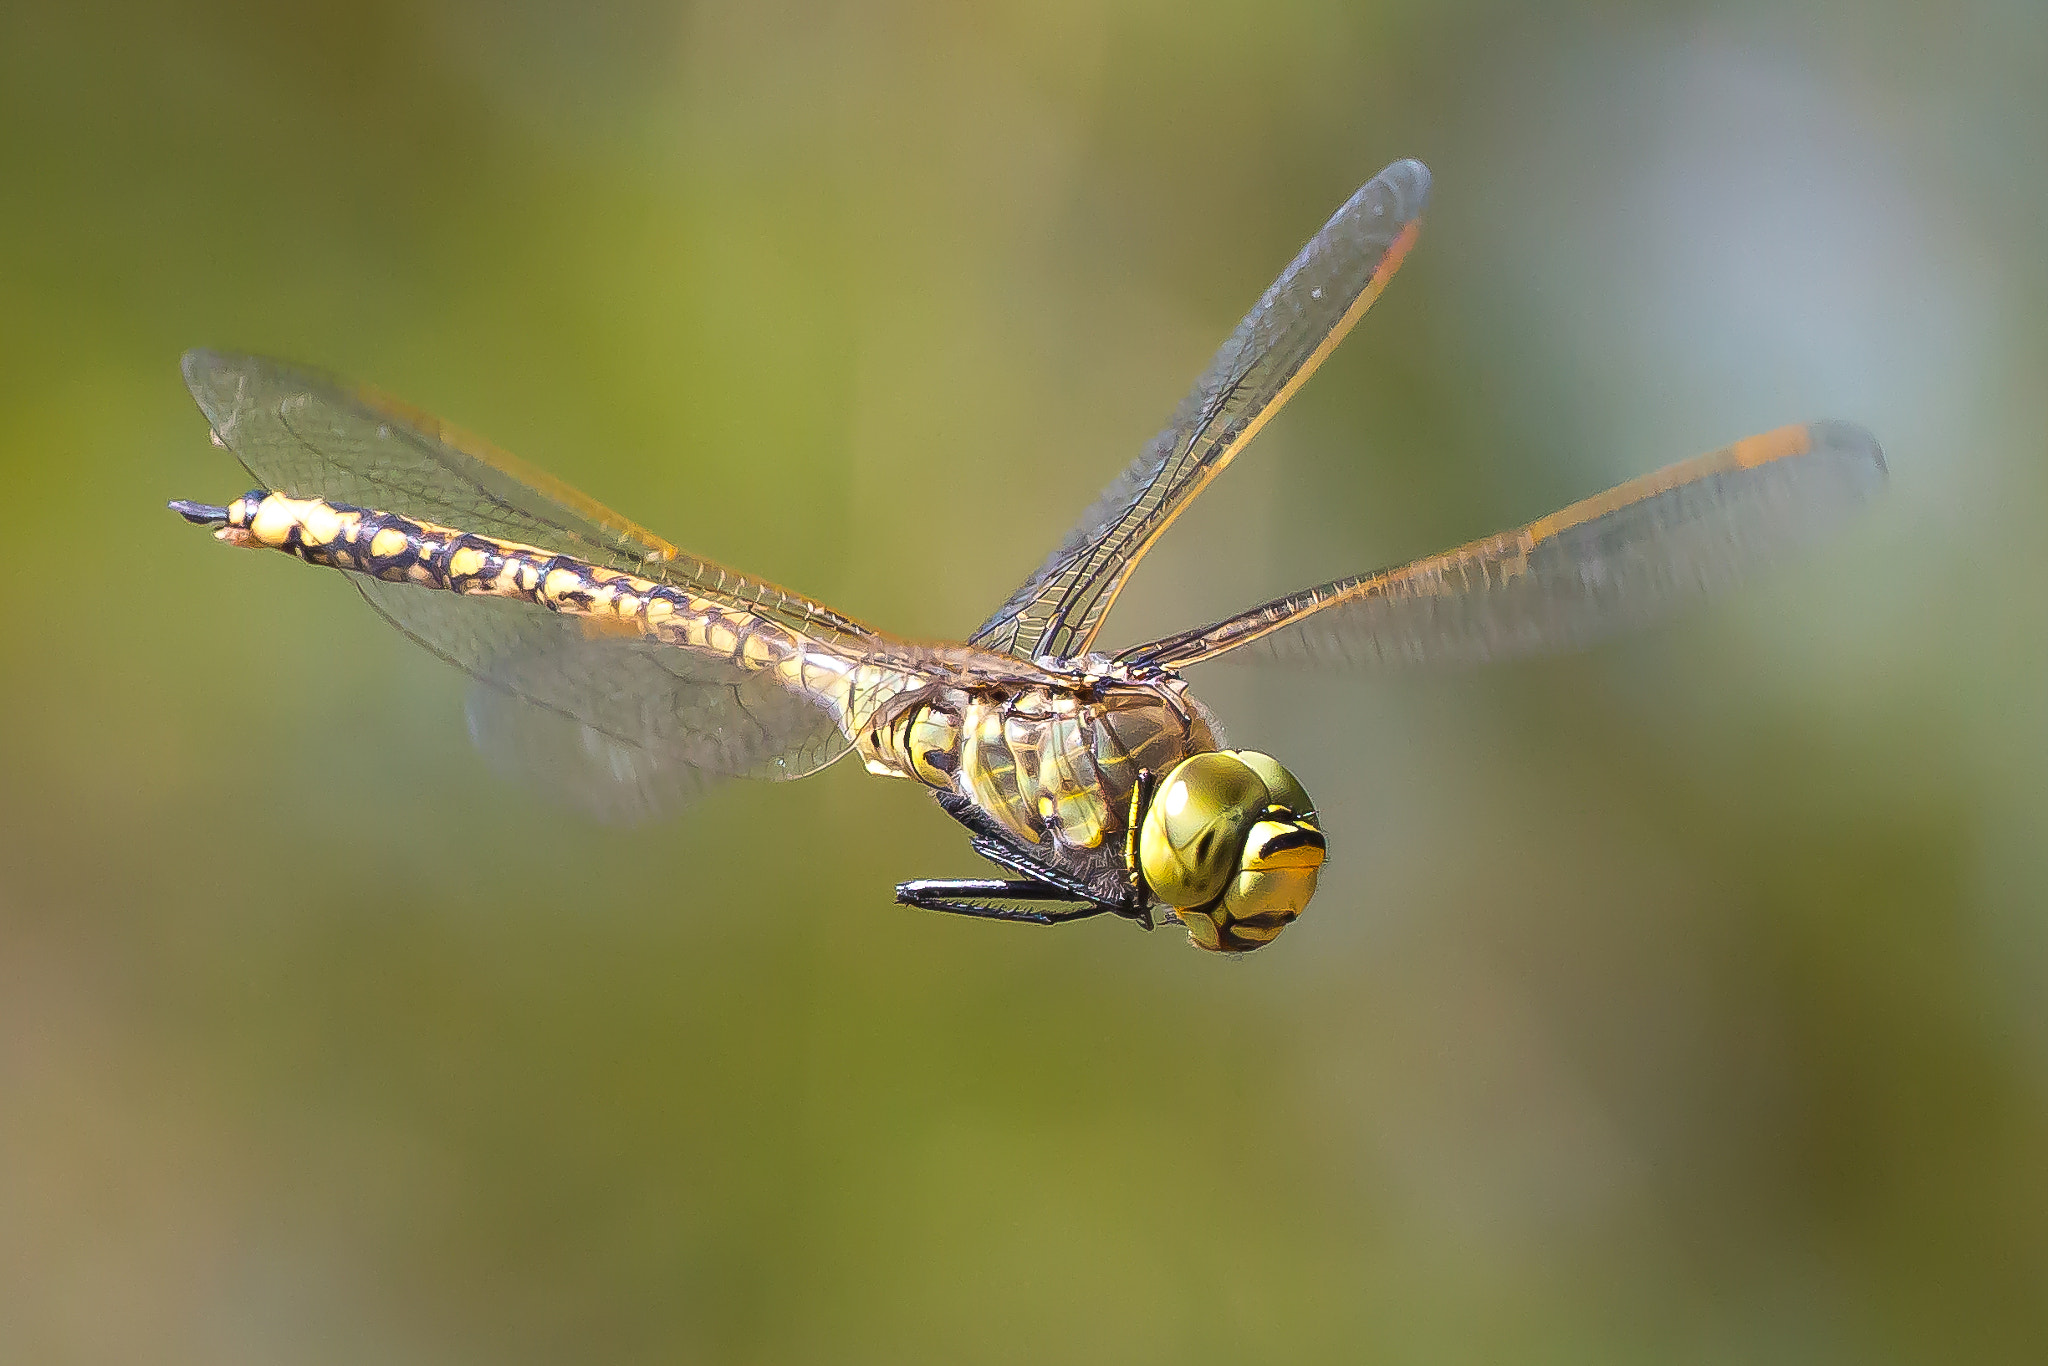 Photograph Dragonfly in Flight by Andrew Tingle on 500px